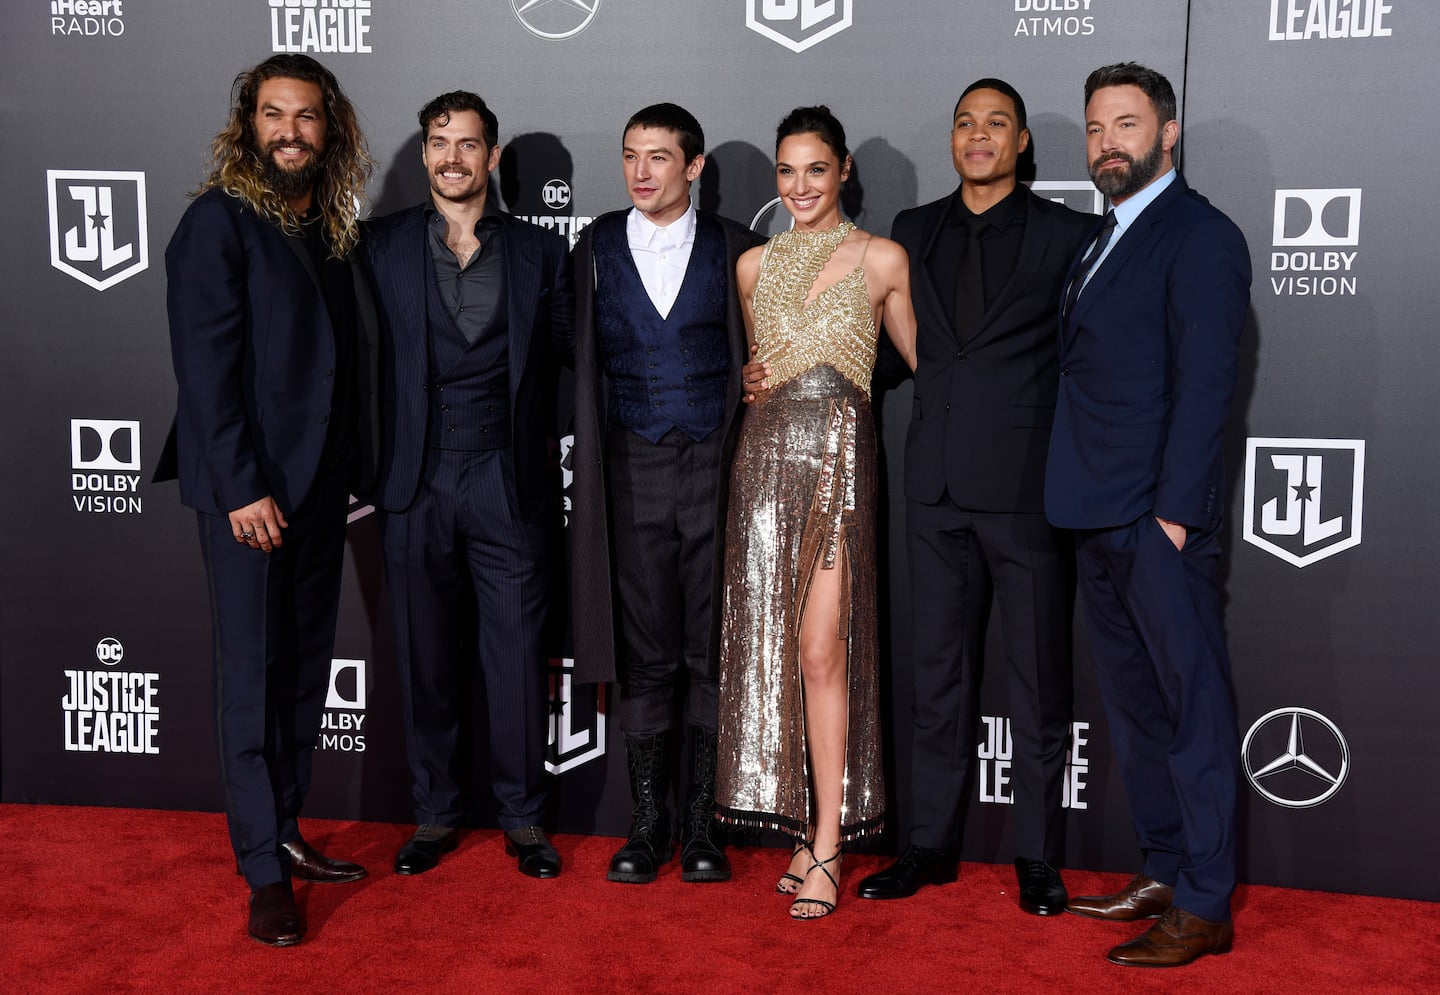 'Justice League' Zach Snyder cut will come out on HBO Max next year